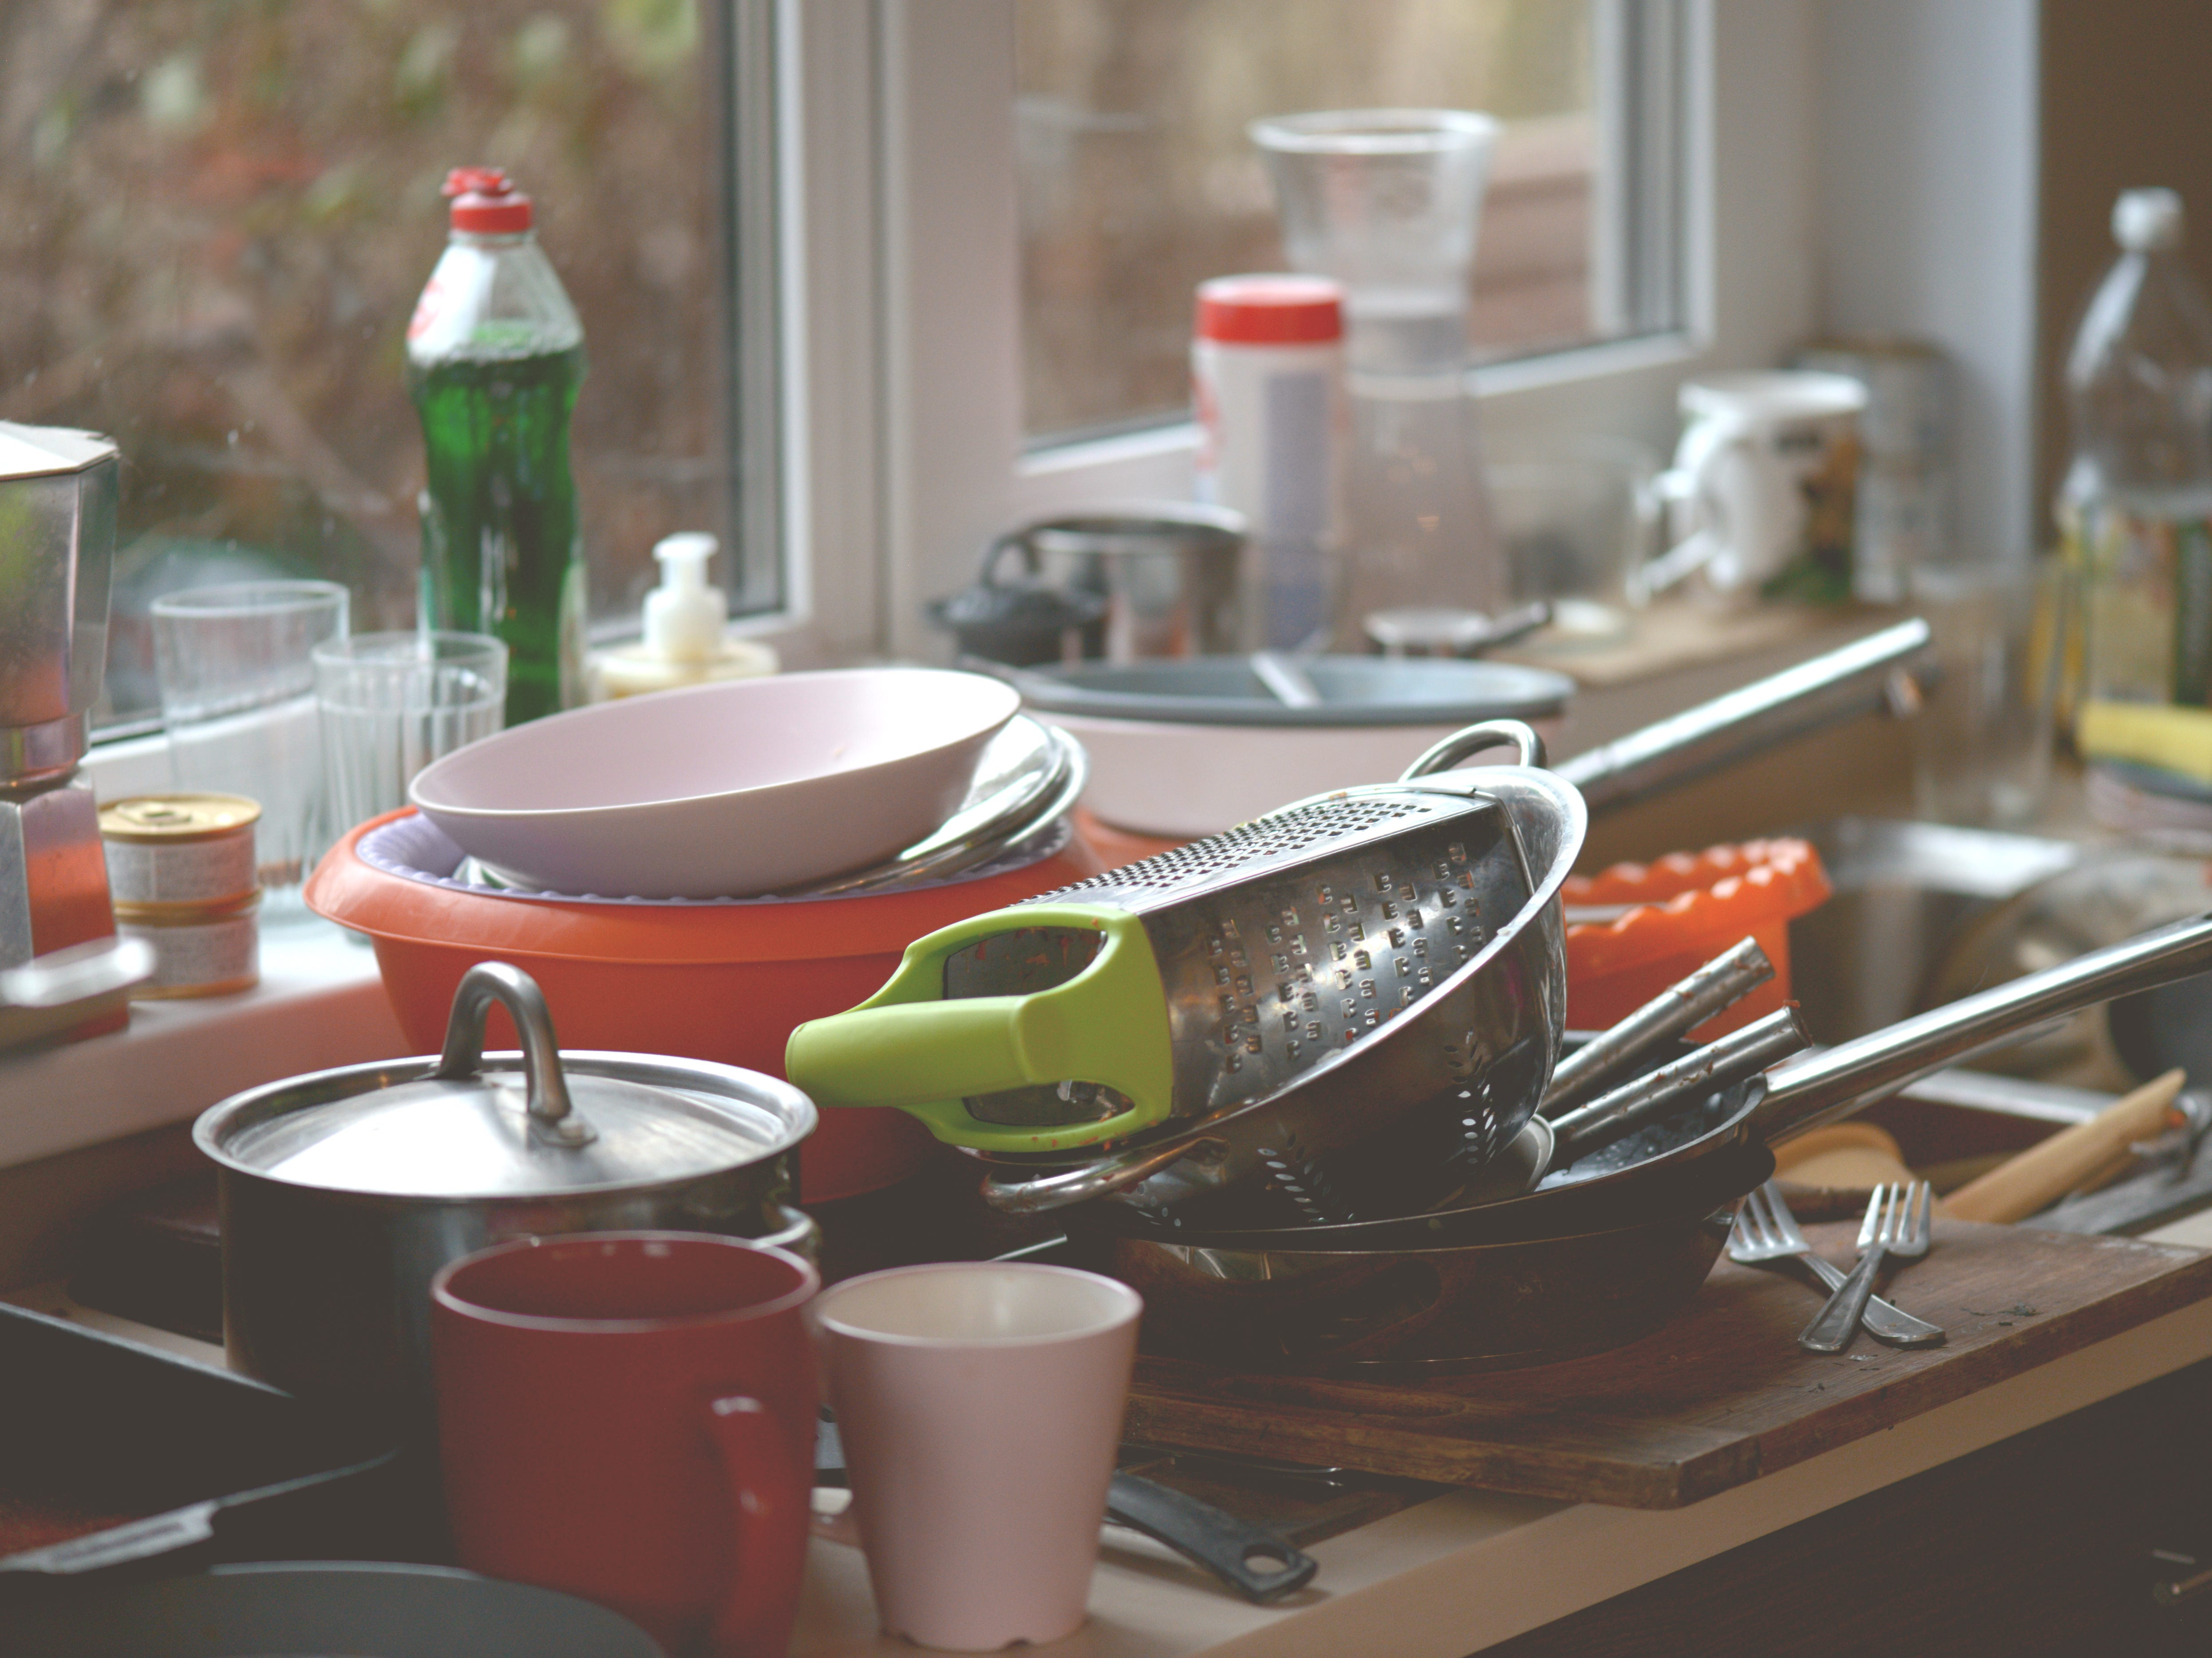 Kitchen sinks carry more bacteria than both toilets and garbage cans, according to a 2011 study by Charles Gerba, a famed University of Arizona microbiologist.